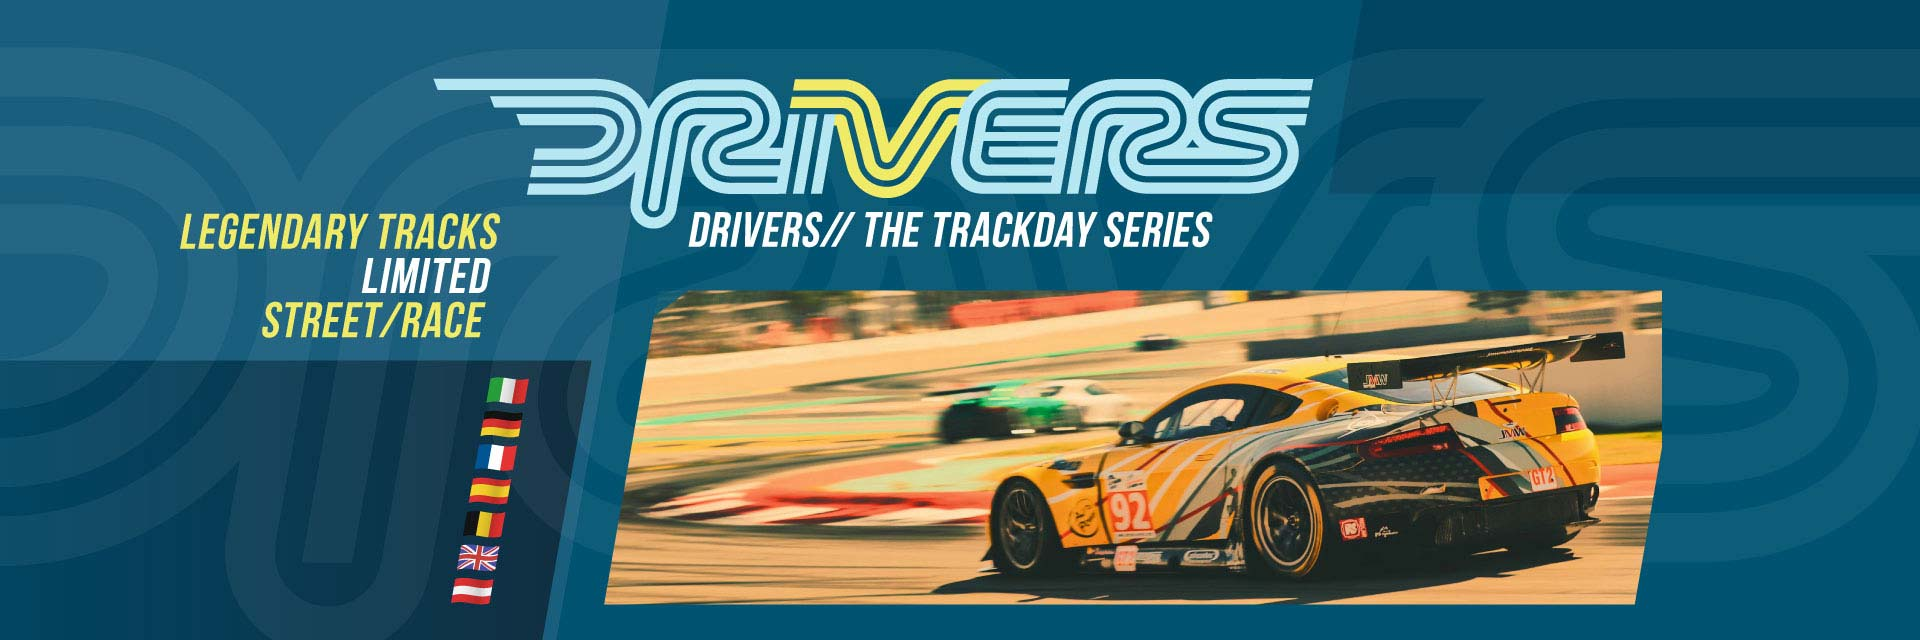 Drivers// The Trackday Series